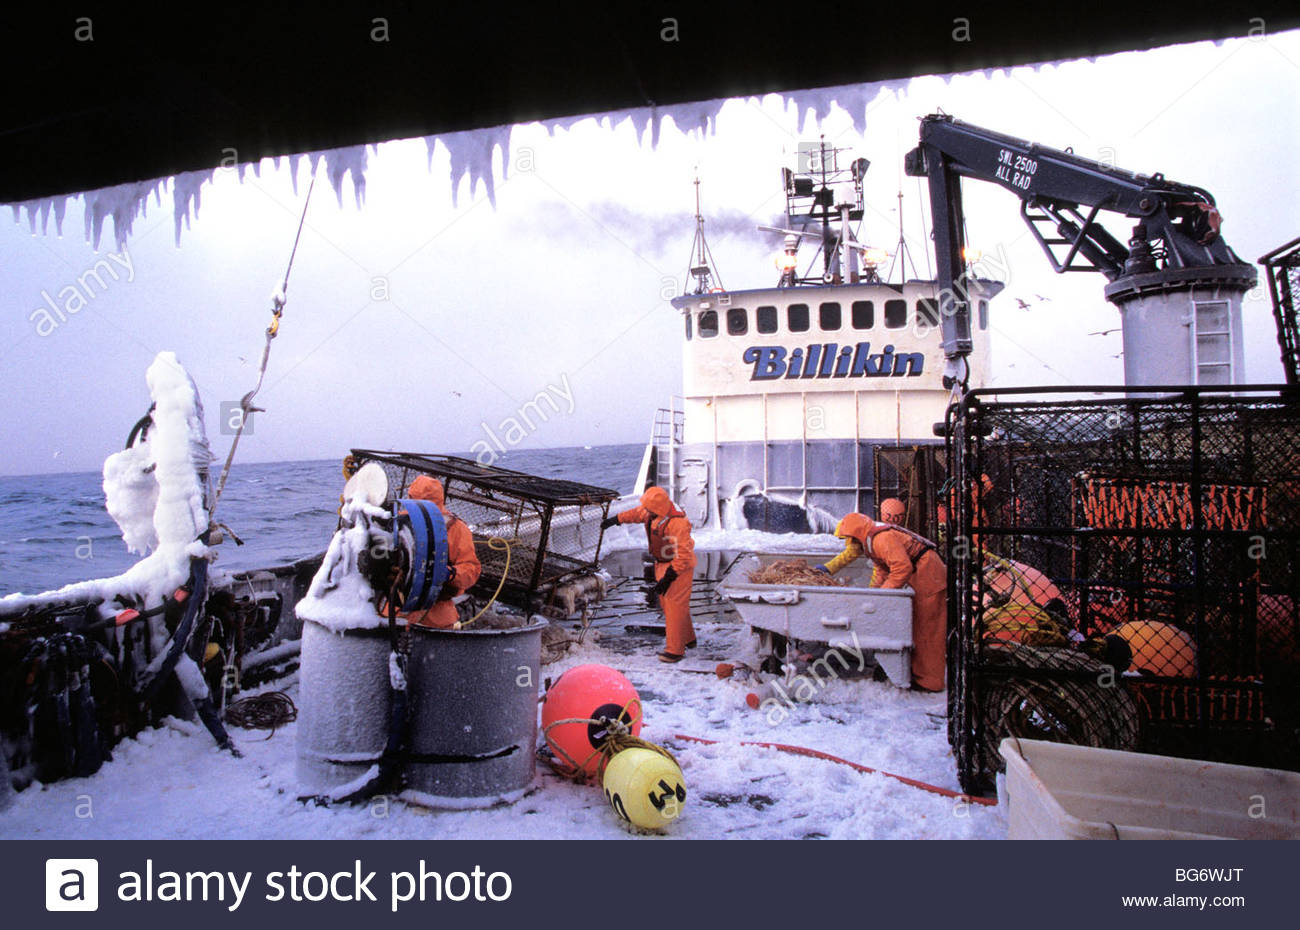 5eb89312ab6 Ice covers the deck on a crab fishing boat in the Bering Sea - Stock Image